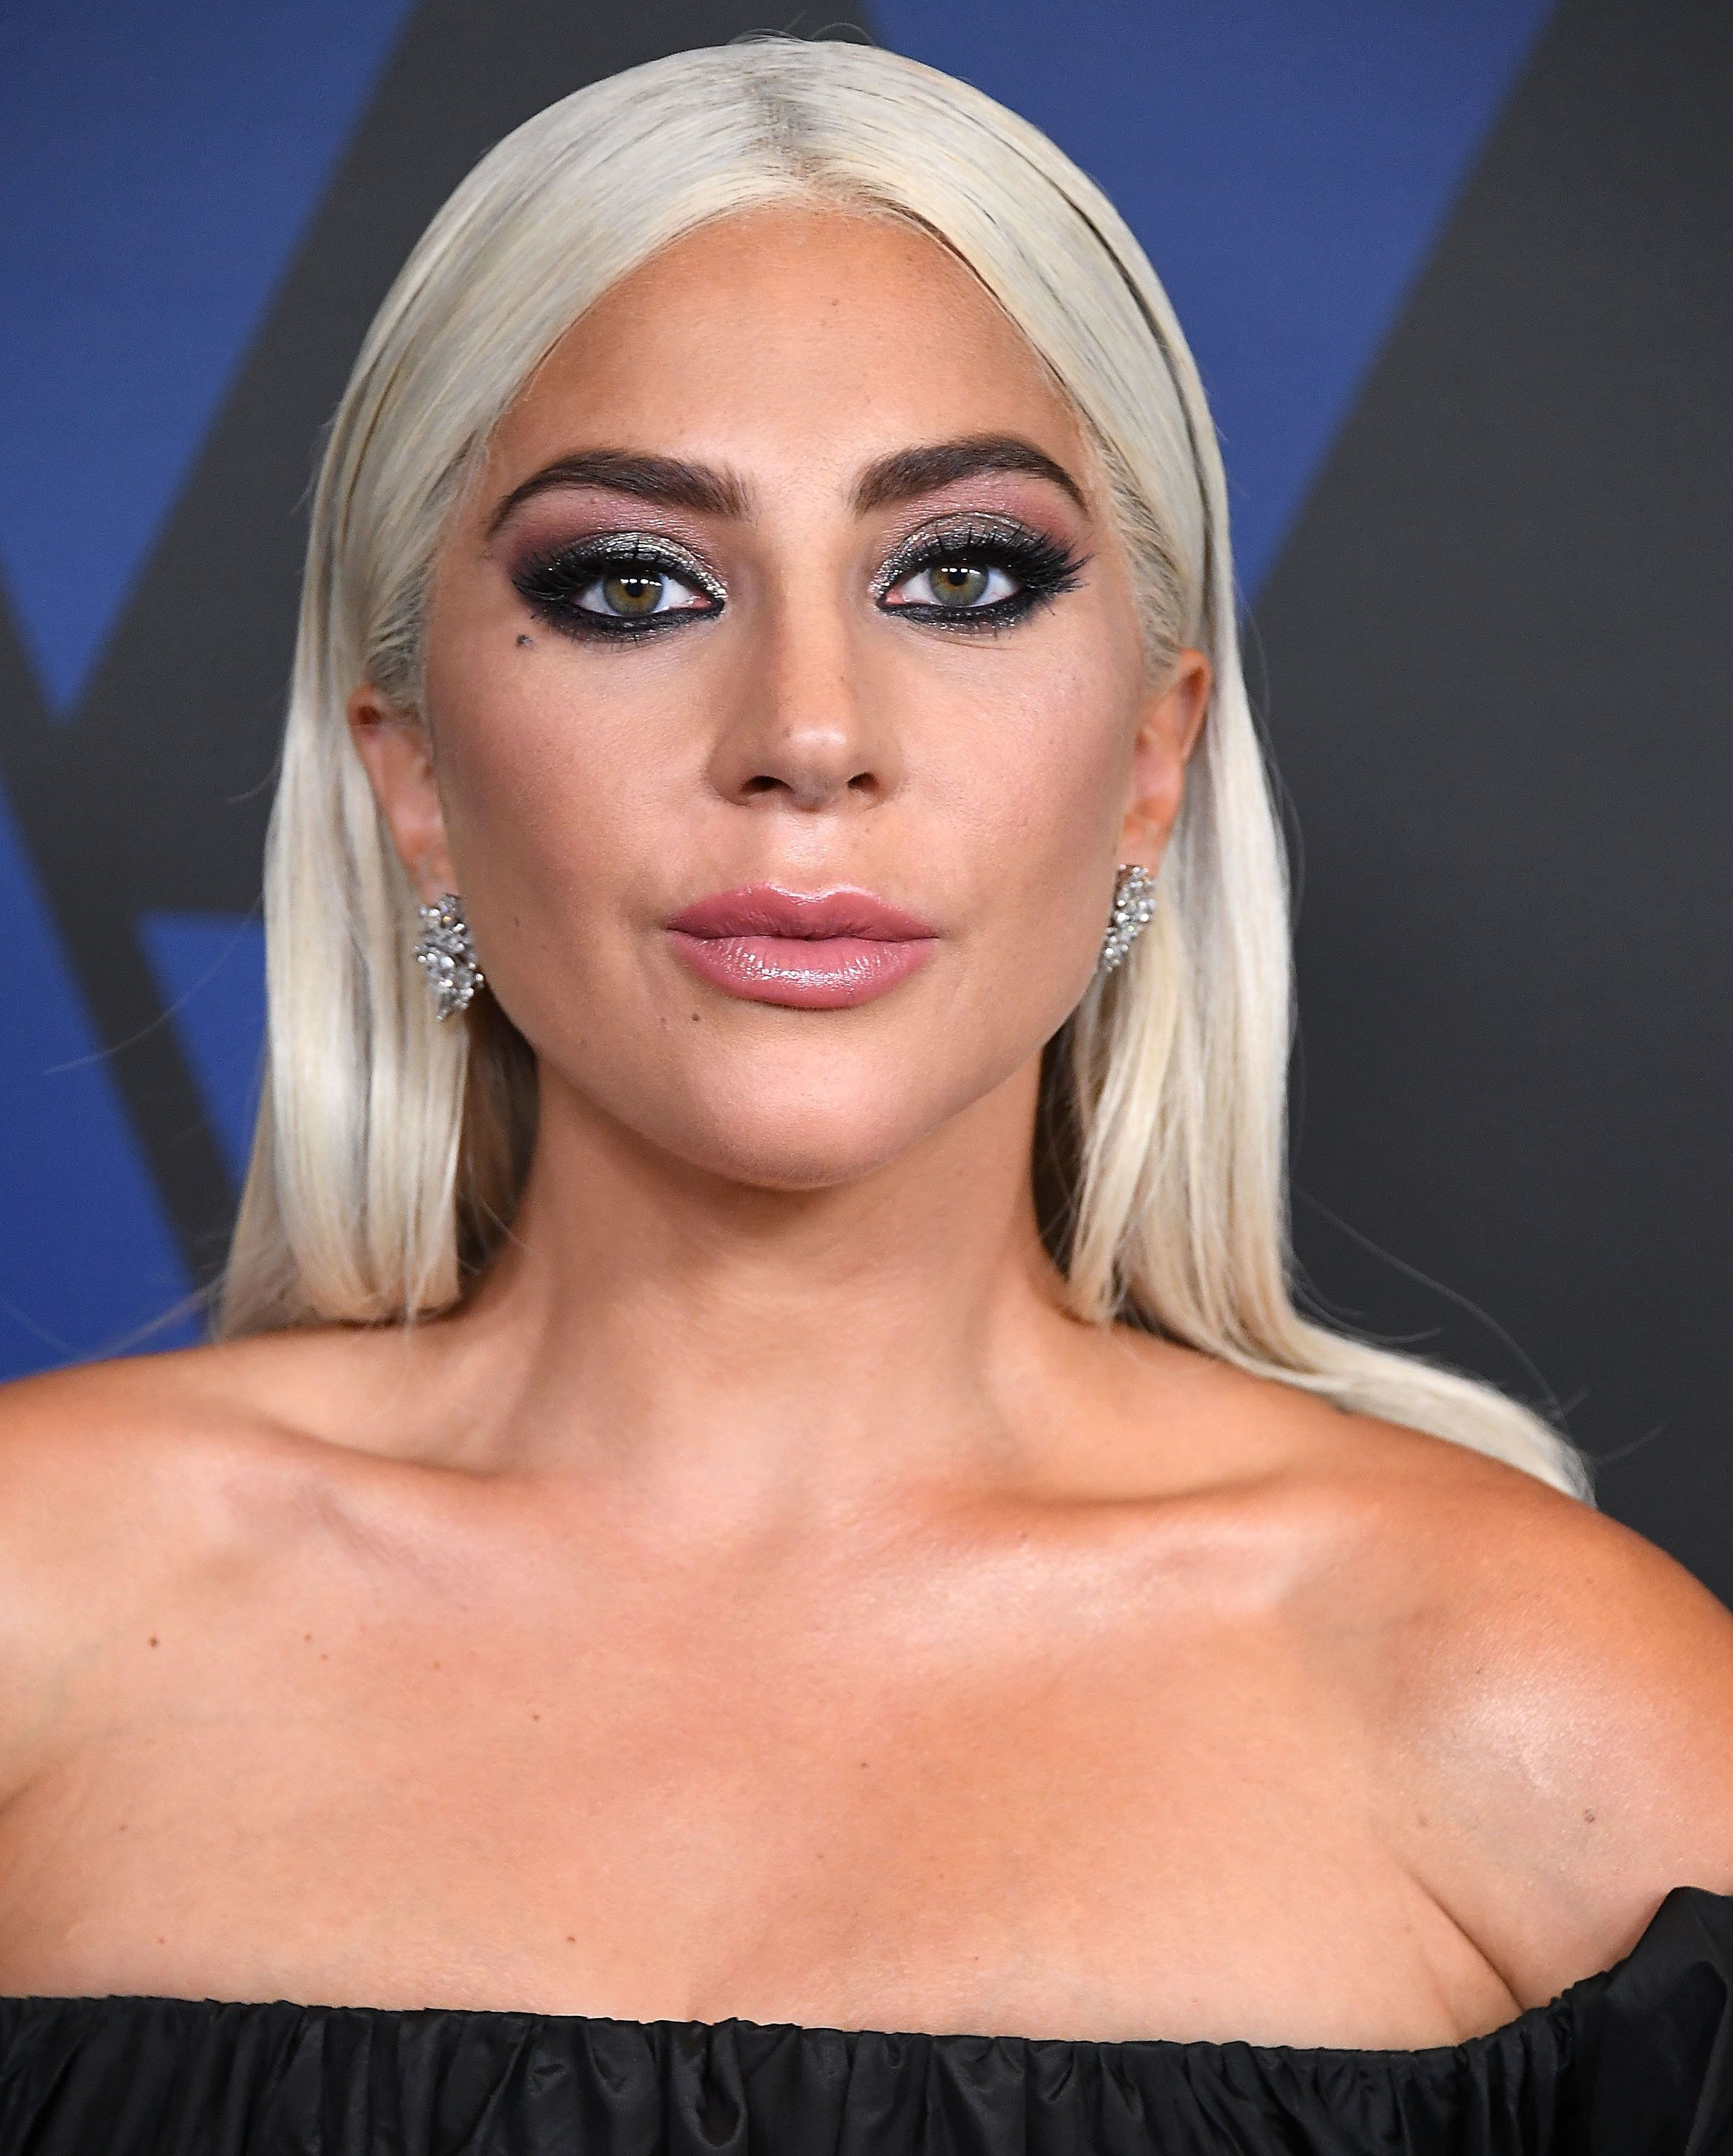 Lady Gaga Says Harassment Was A 'Rule, Not An Exception' In